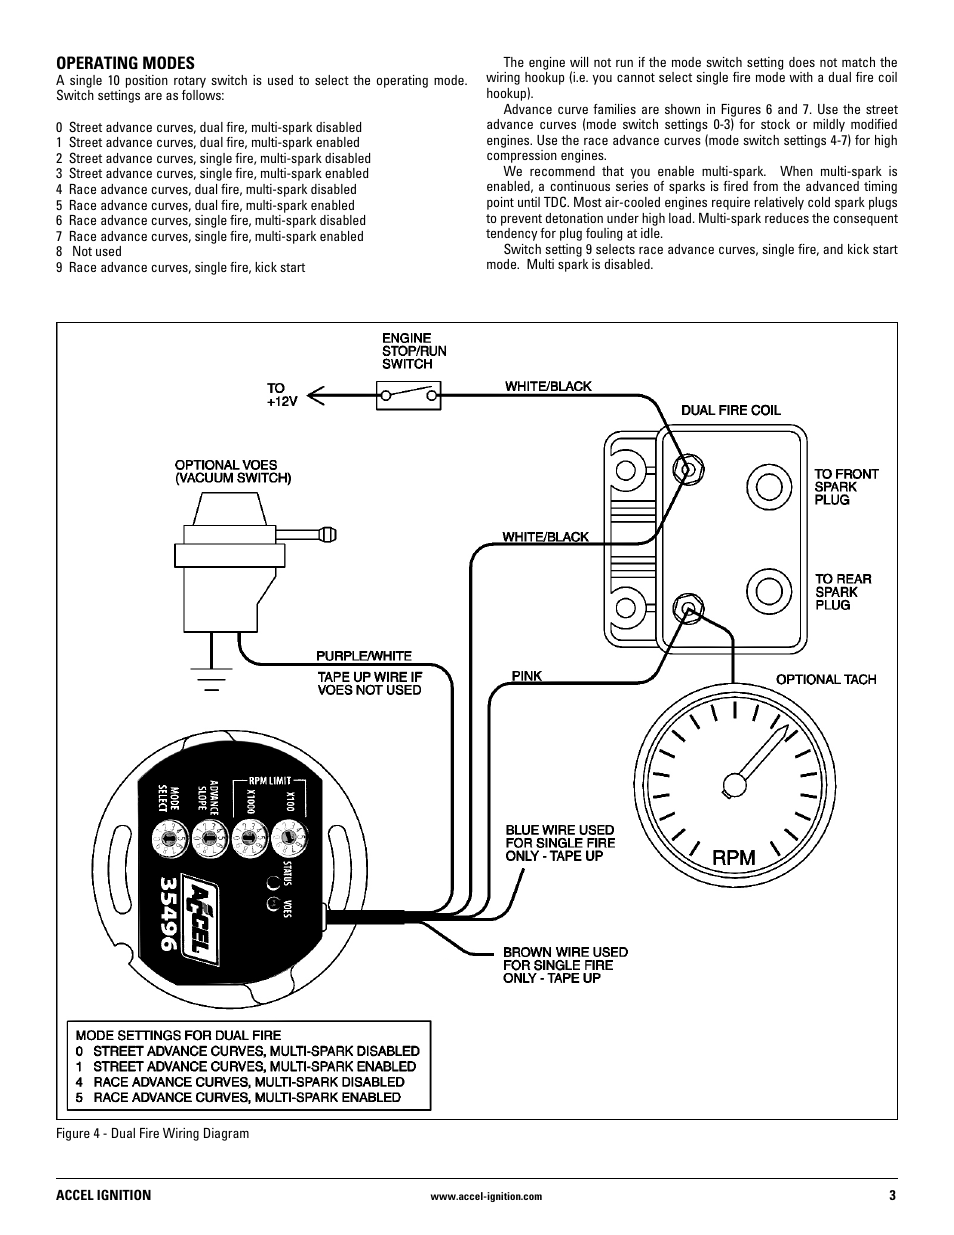 mallory ignition accel ignition 35496 page3?resize\\\\\\\\\\\\\\\=665%2C861 mallory unilite wiring diagram tamahuproject org mallory unilite wiring schematic at nearapp.co